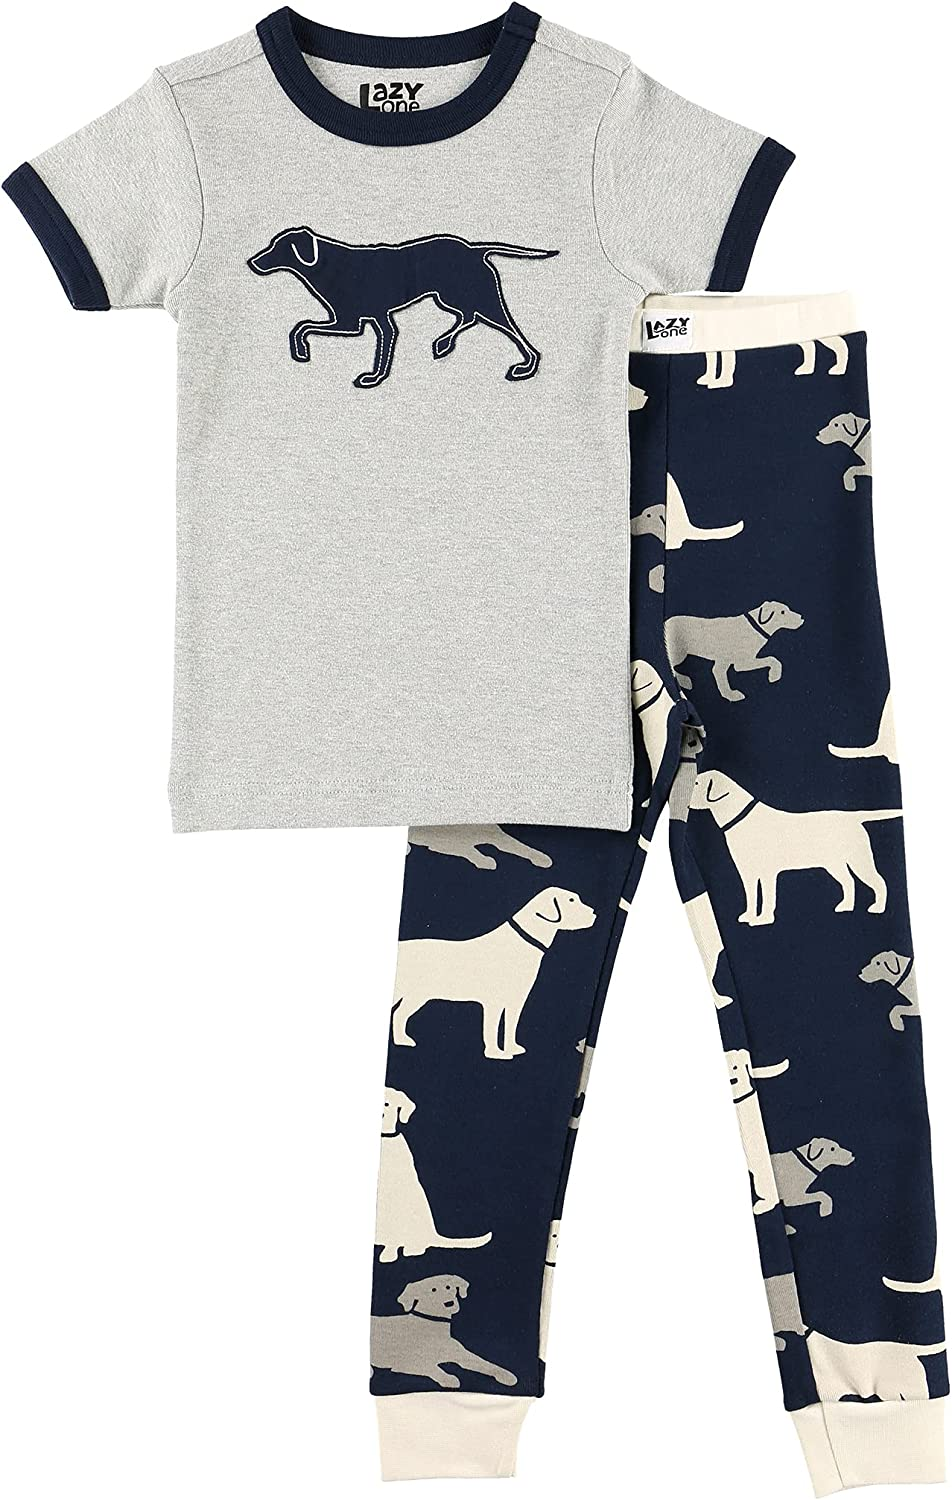 Lazy One Short-Sleeve Pajamas Sets for Dealing full Jacksonville Mall price reduction and Girls Boys Kids' Sof